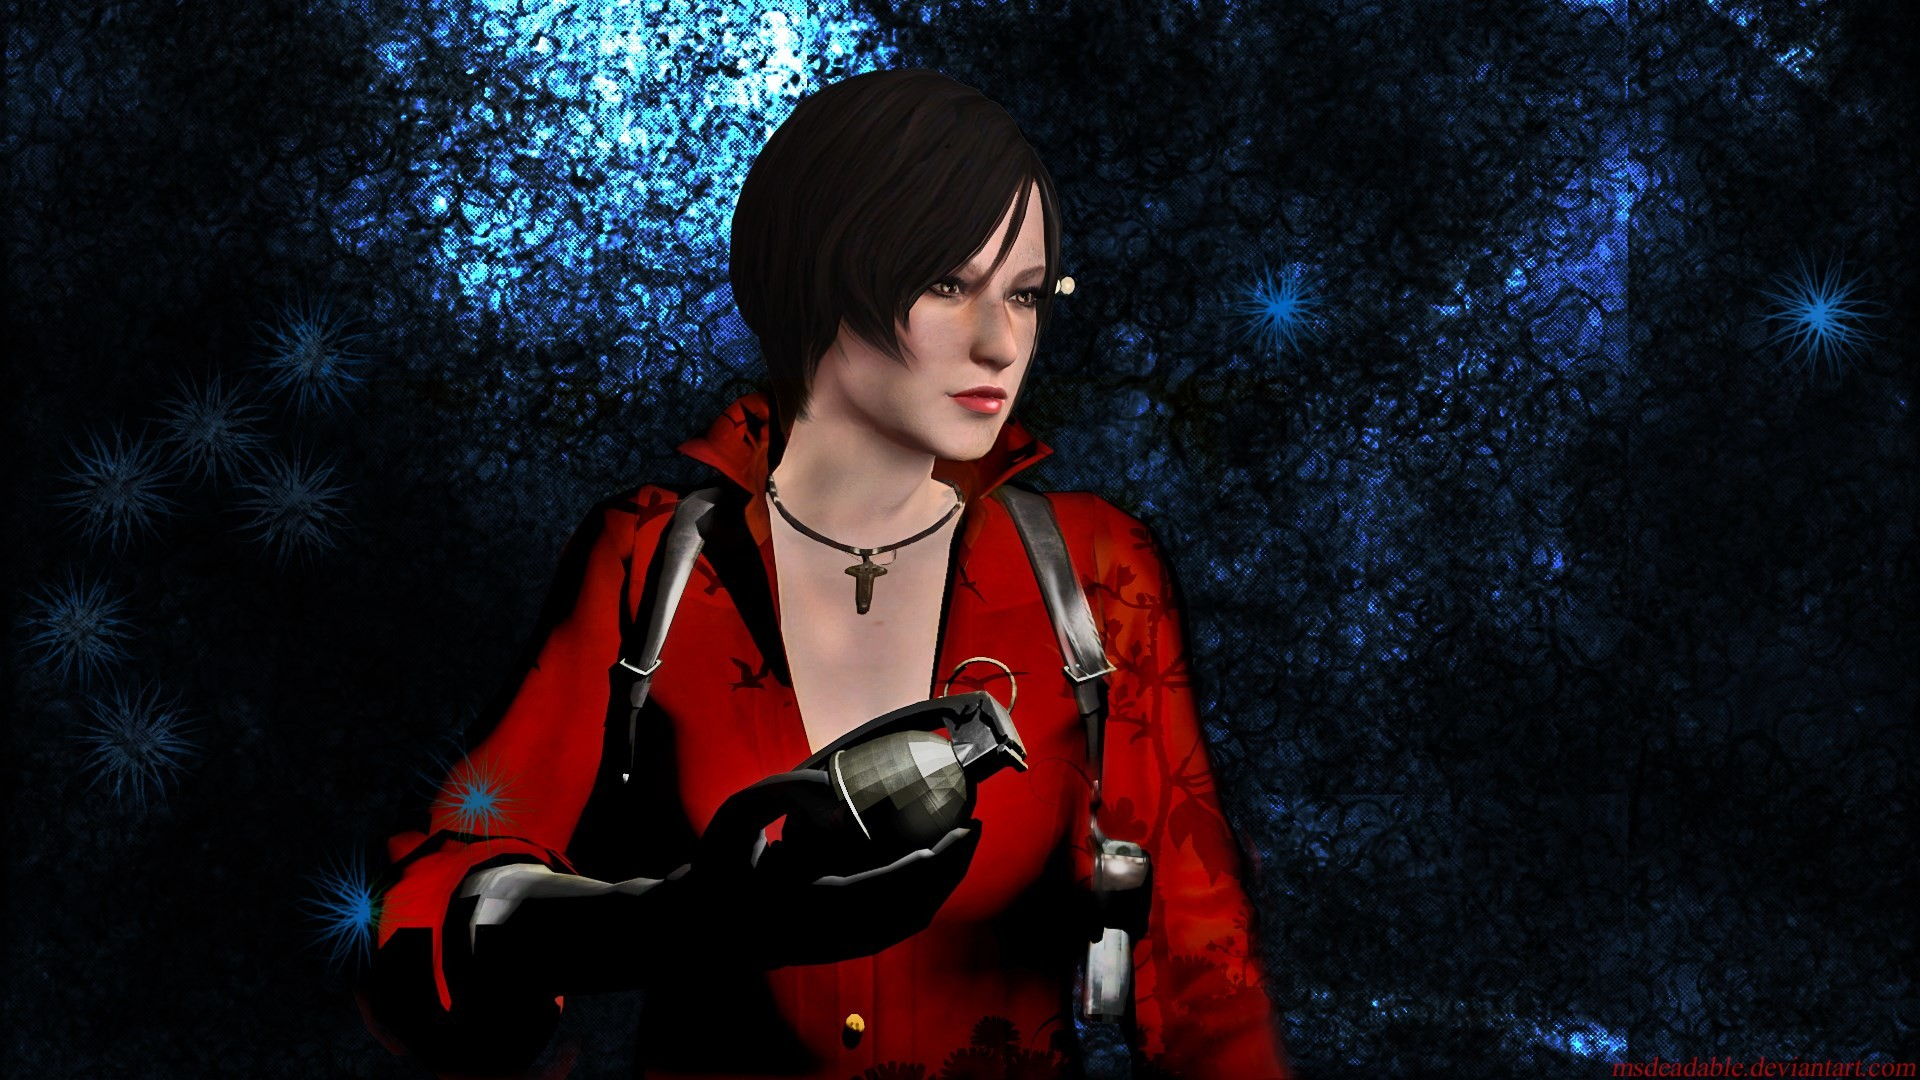 1920x1080 Rejiclad 17 10 Ada Wong by MsDeadable